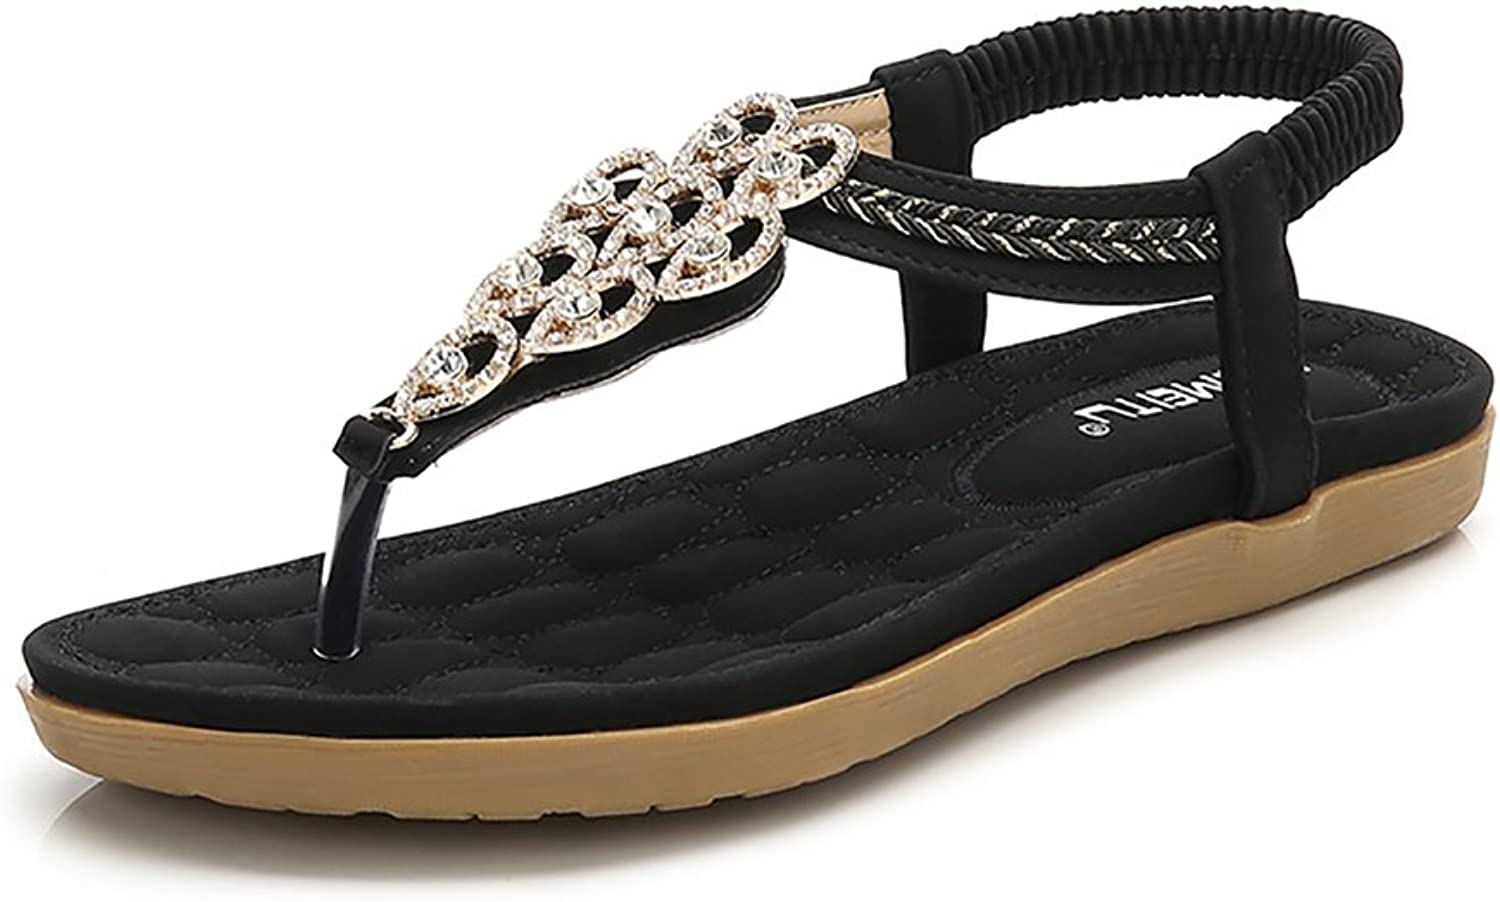 Meeshine Women's Casual Slingback Summer Beach Thong Flat Sandal